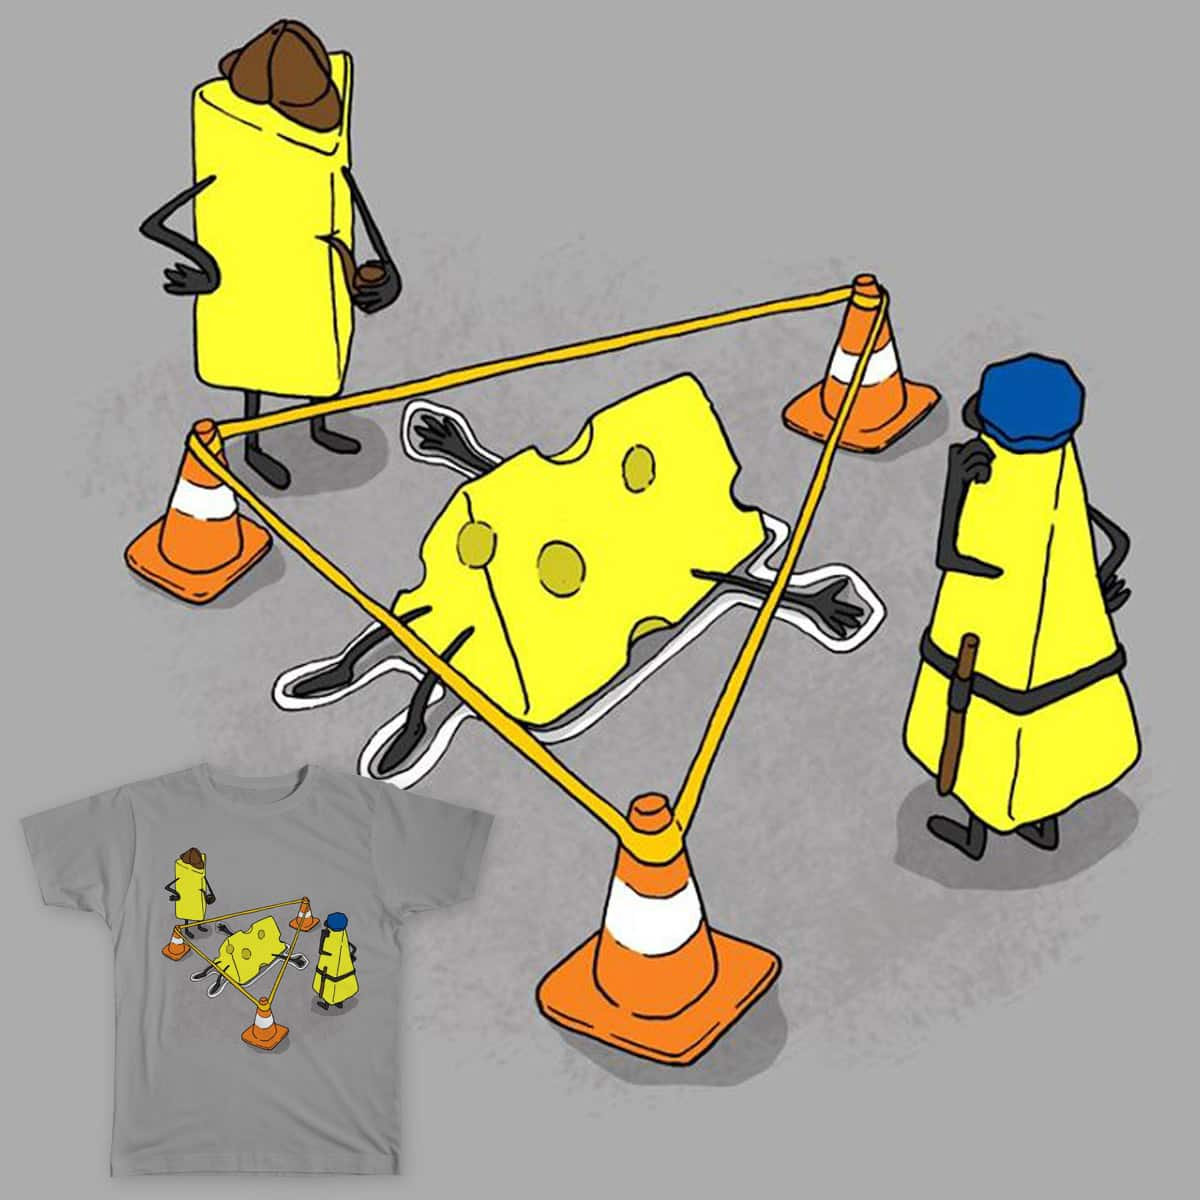 Who killed the cheese?! by Leandro Lima on Threadless